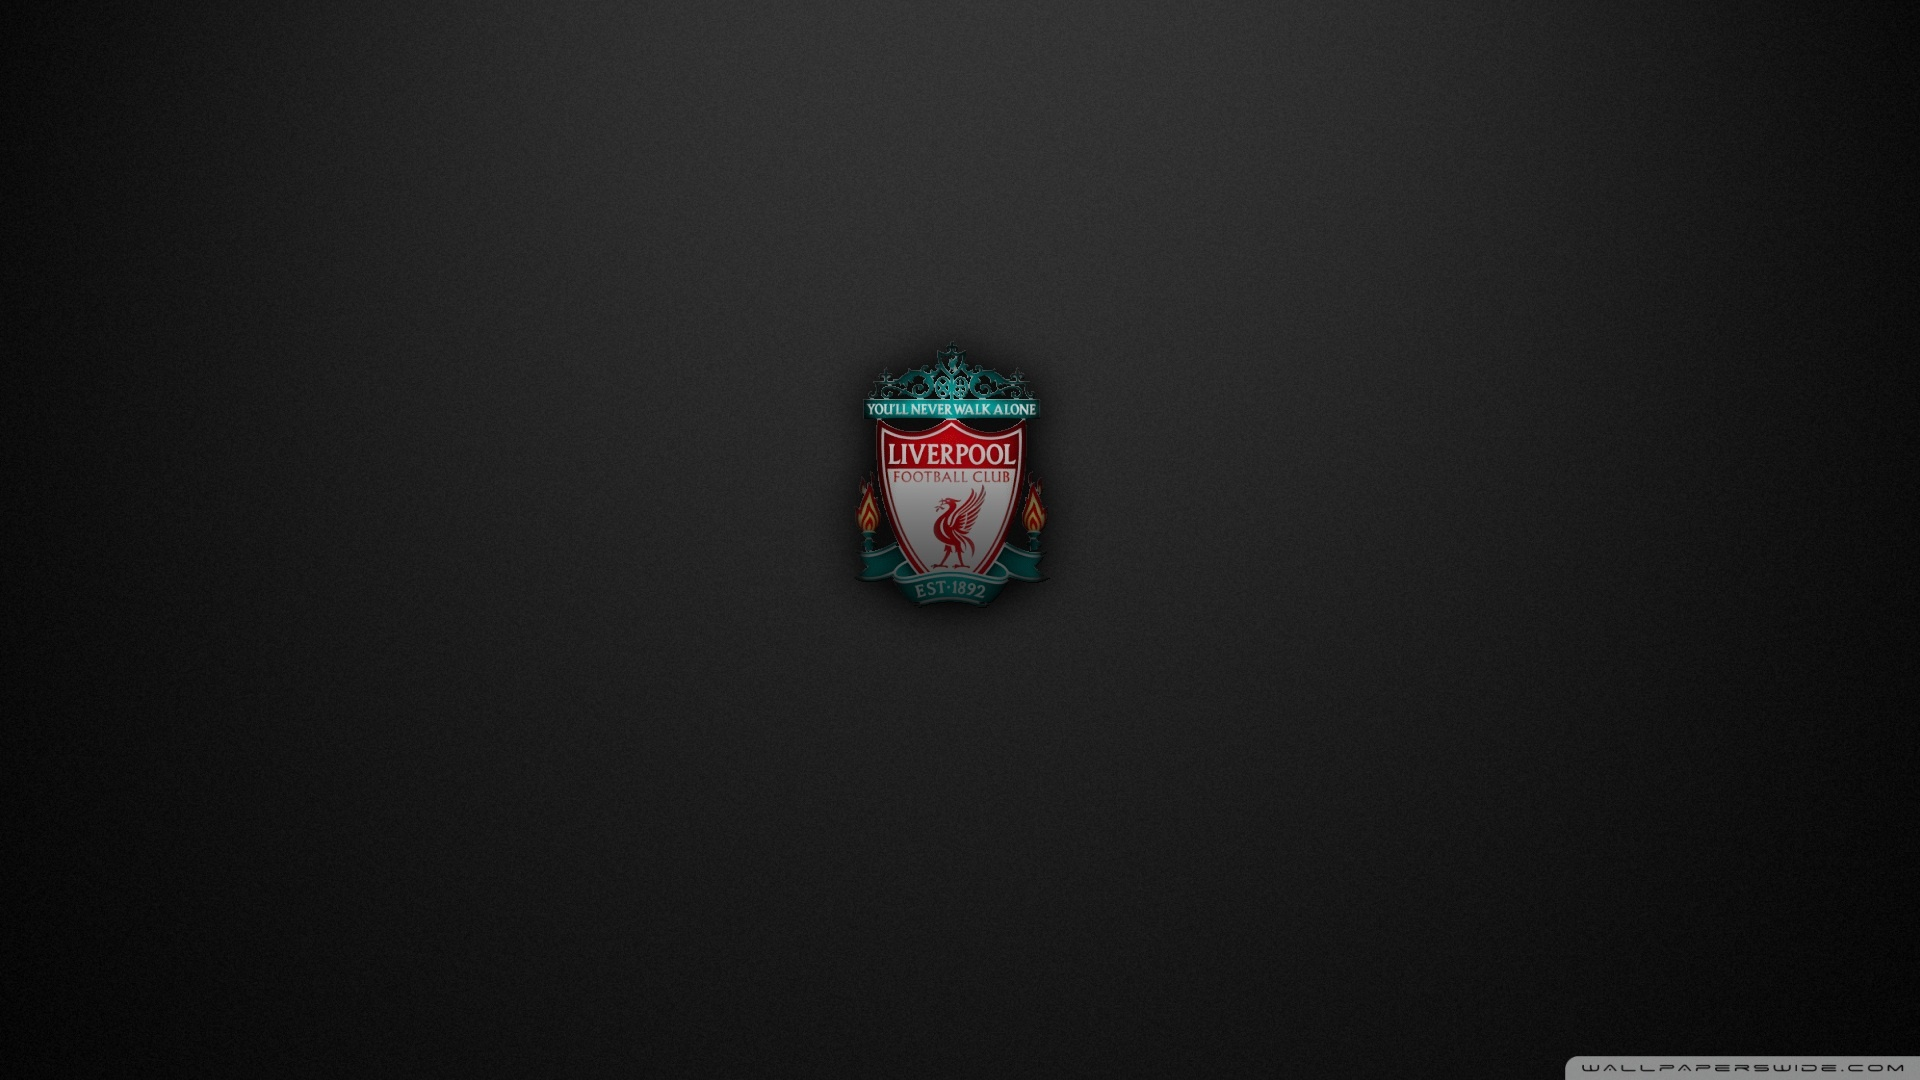 Liverpool Wallpaper Hd Posted By Ryan Sellers